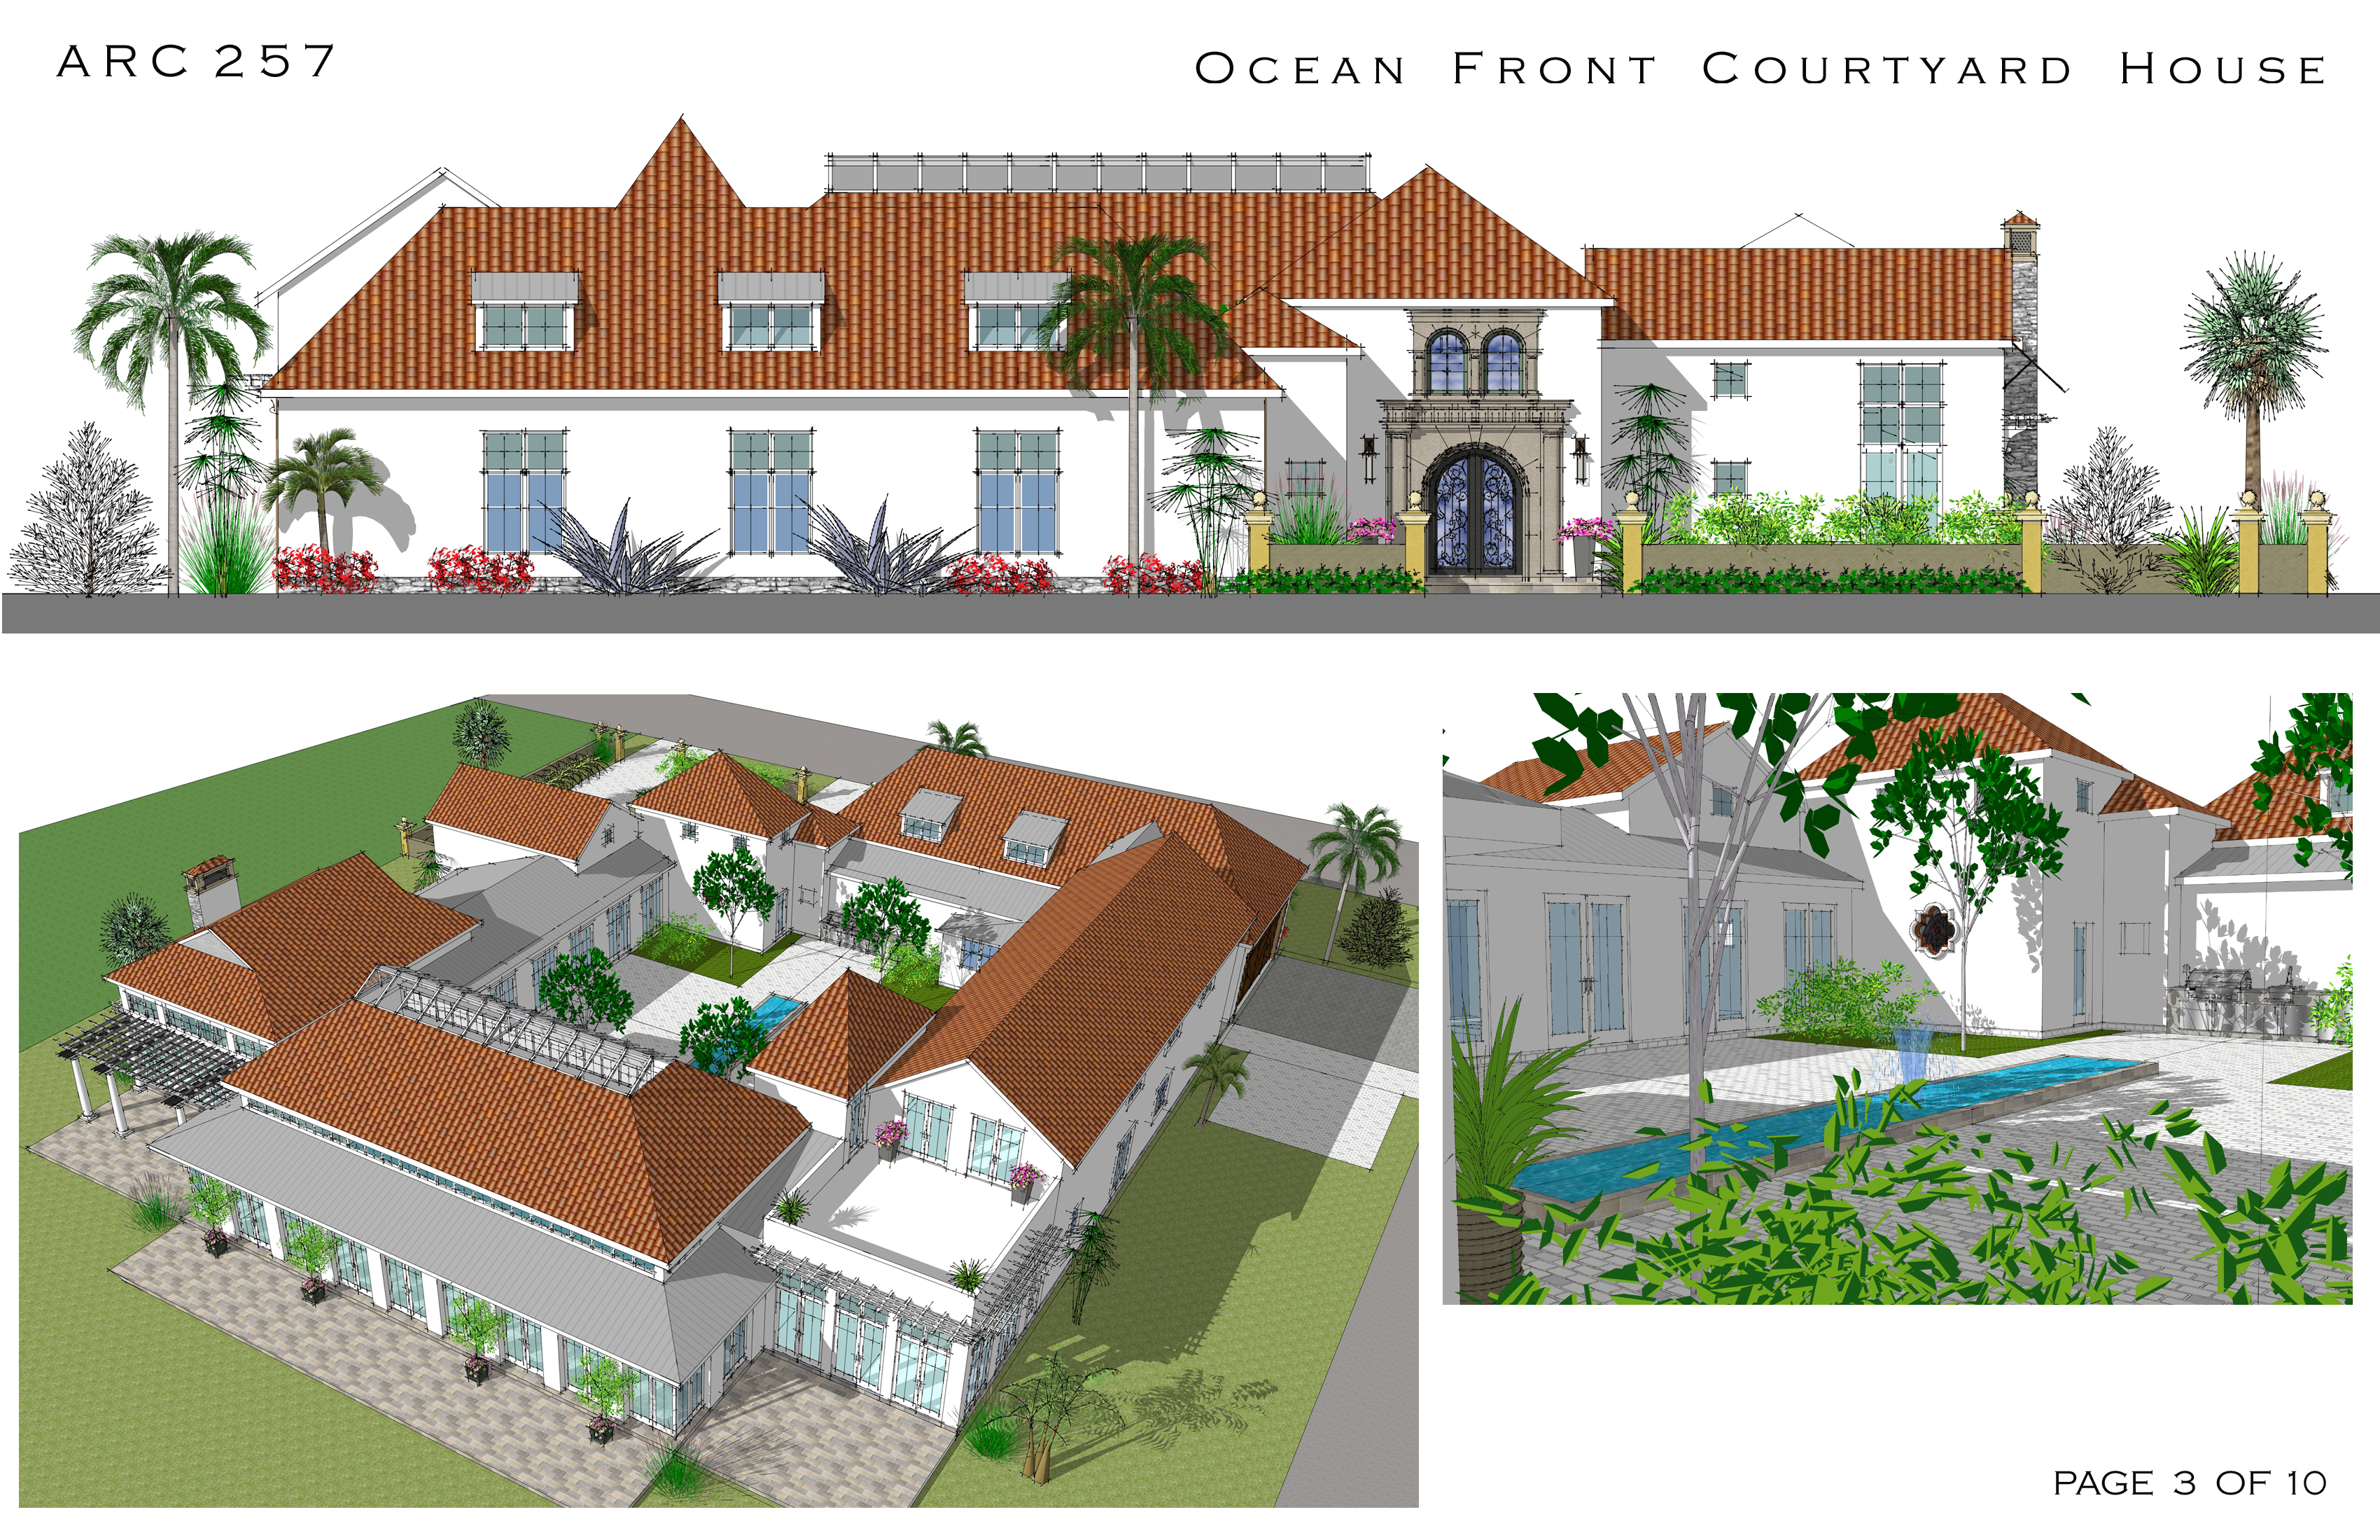 Large home plans designed by arcadia design oceanfront Courtyard house plans